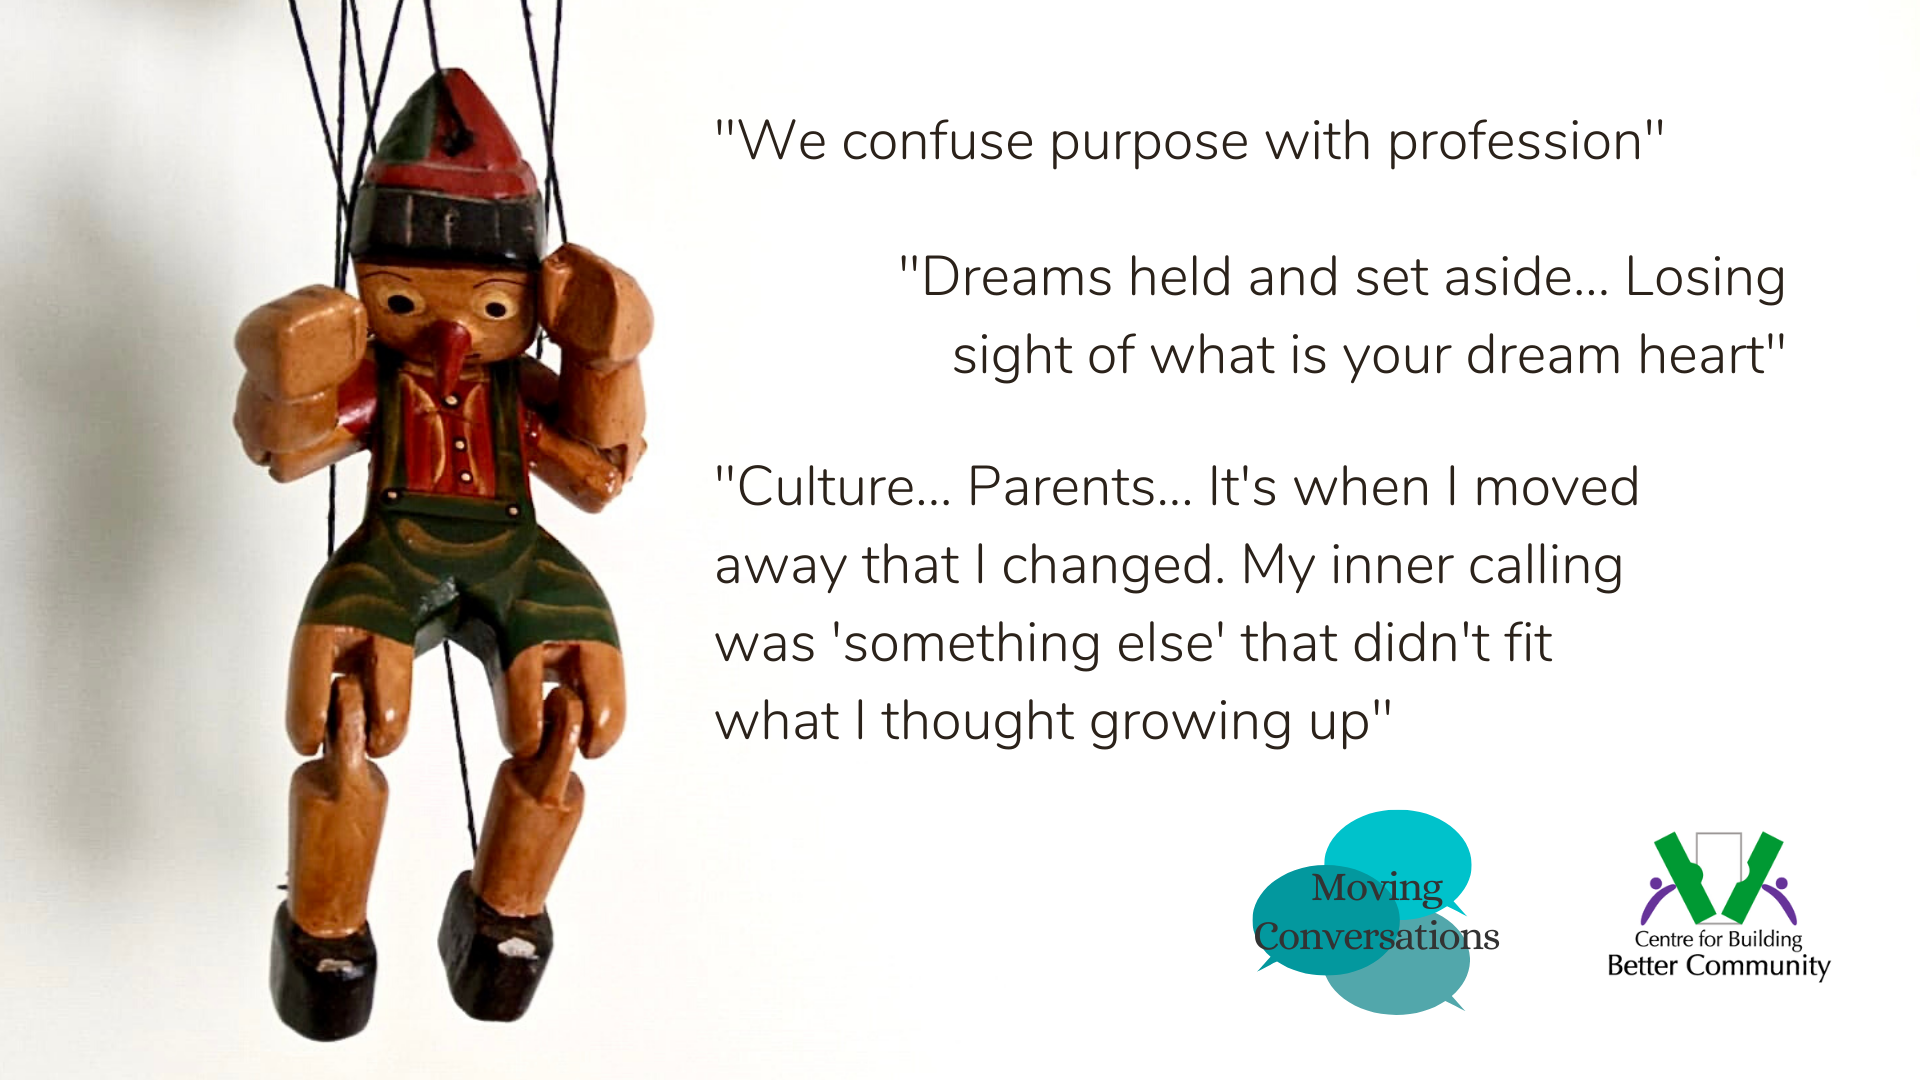 Photograph of a Pinocchio marionette. Quotes from participants in the Finding Purpose discussion included. Quote 1: We confuse purpose with profession. Quote 2: Dreams held and set aside... Losing sight of what is your dream heart. Quote 3: Culture... Parents... It's when I moved away that I changed. My inner calling was 'something else' that didn't fit what I thought growing up.